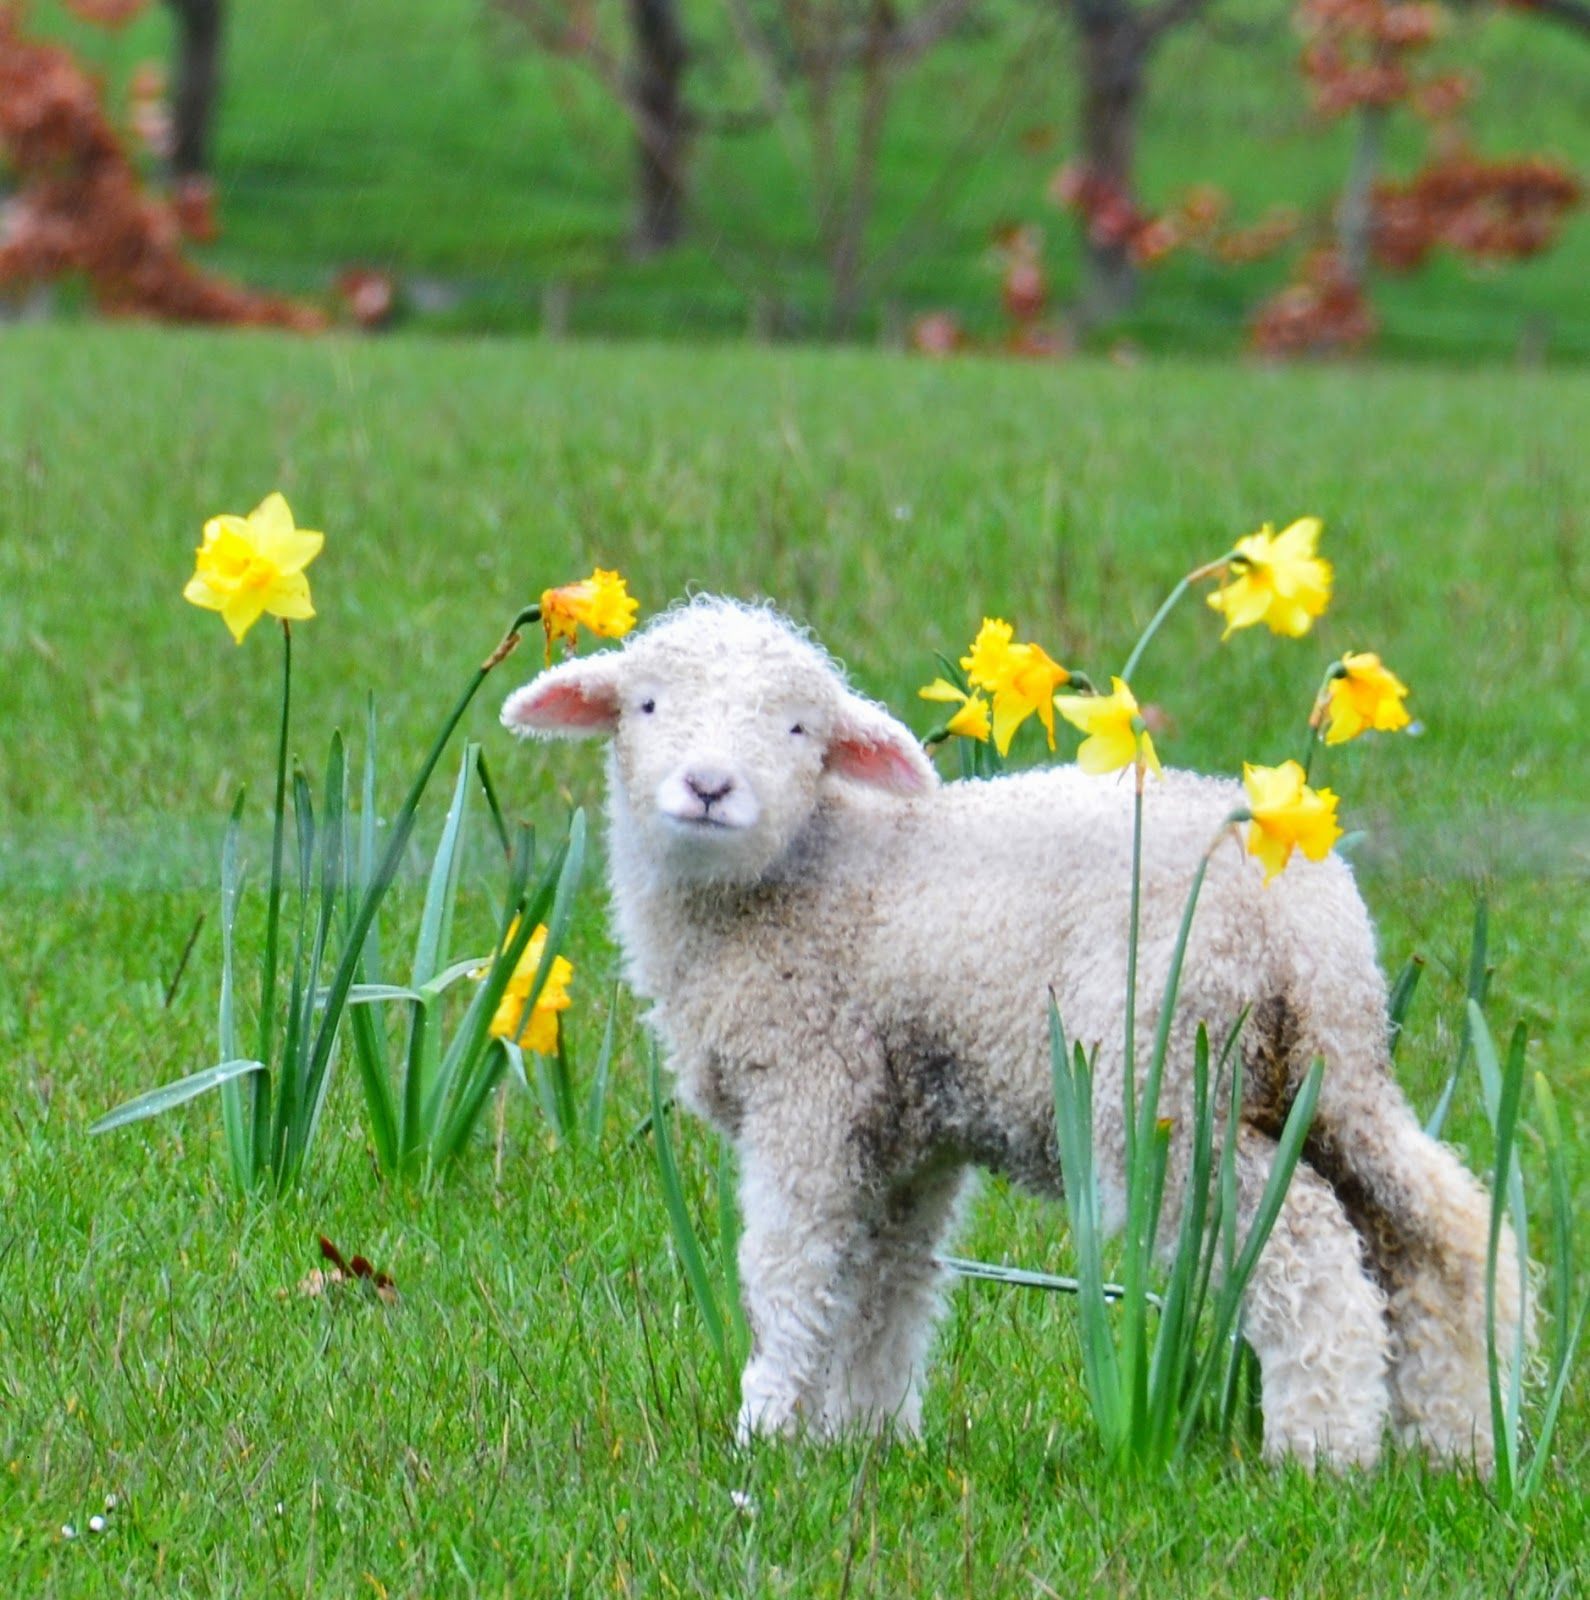 The Polohouse: Blessed Easter Greetings, sweetest ever | Animals ... for baby lamb in spring  300lyp